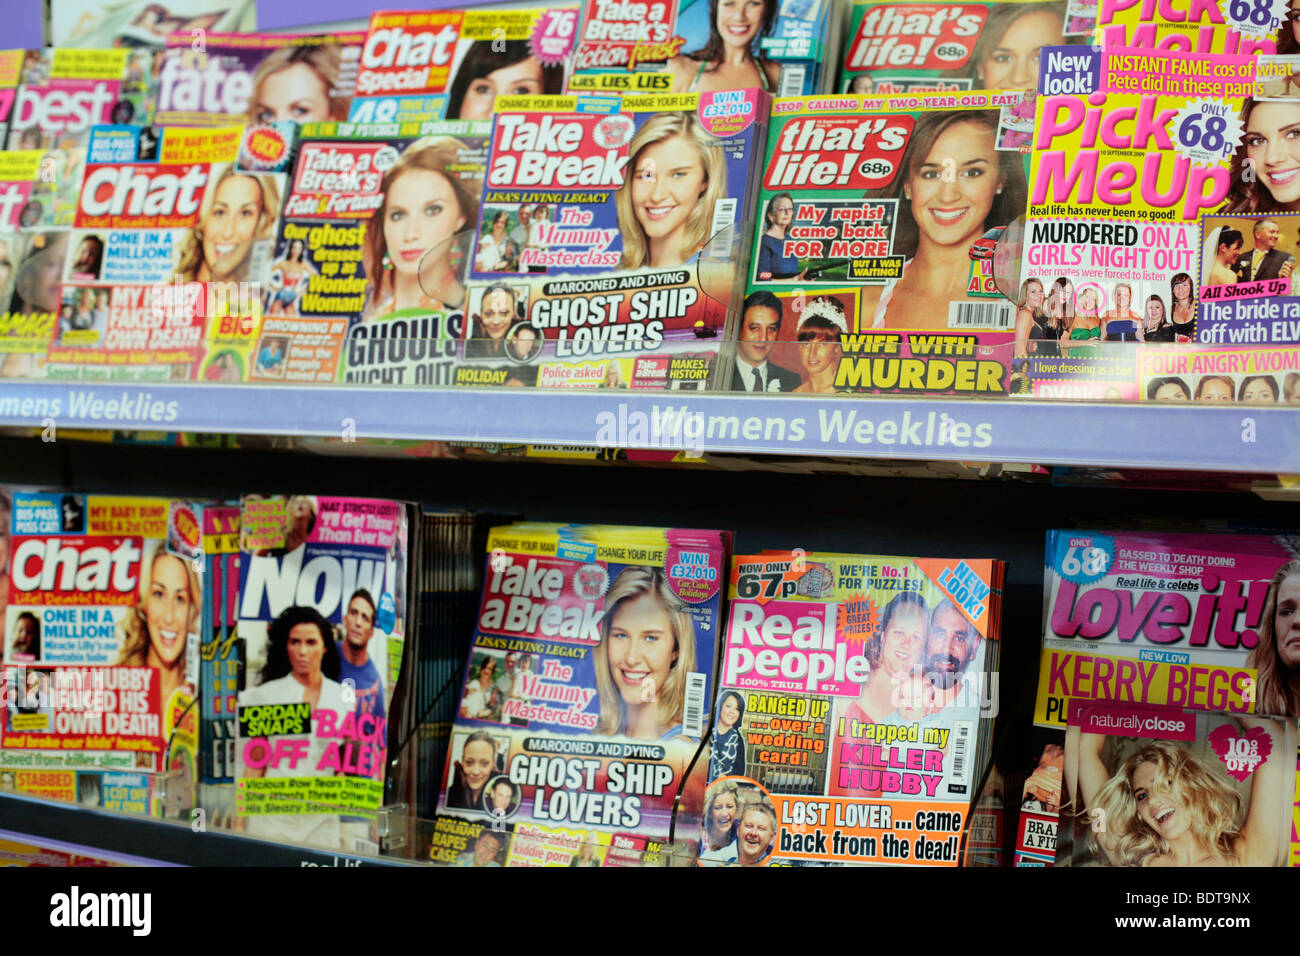 Celebrity gossip / real life magazines on sale in Tesco. - Stock Image